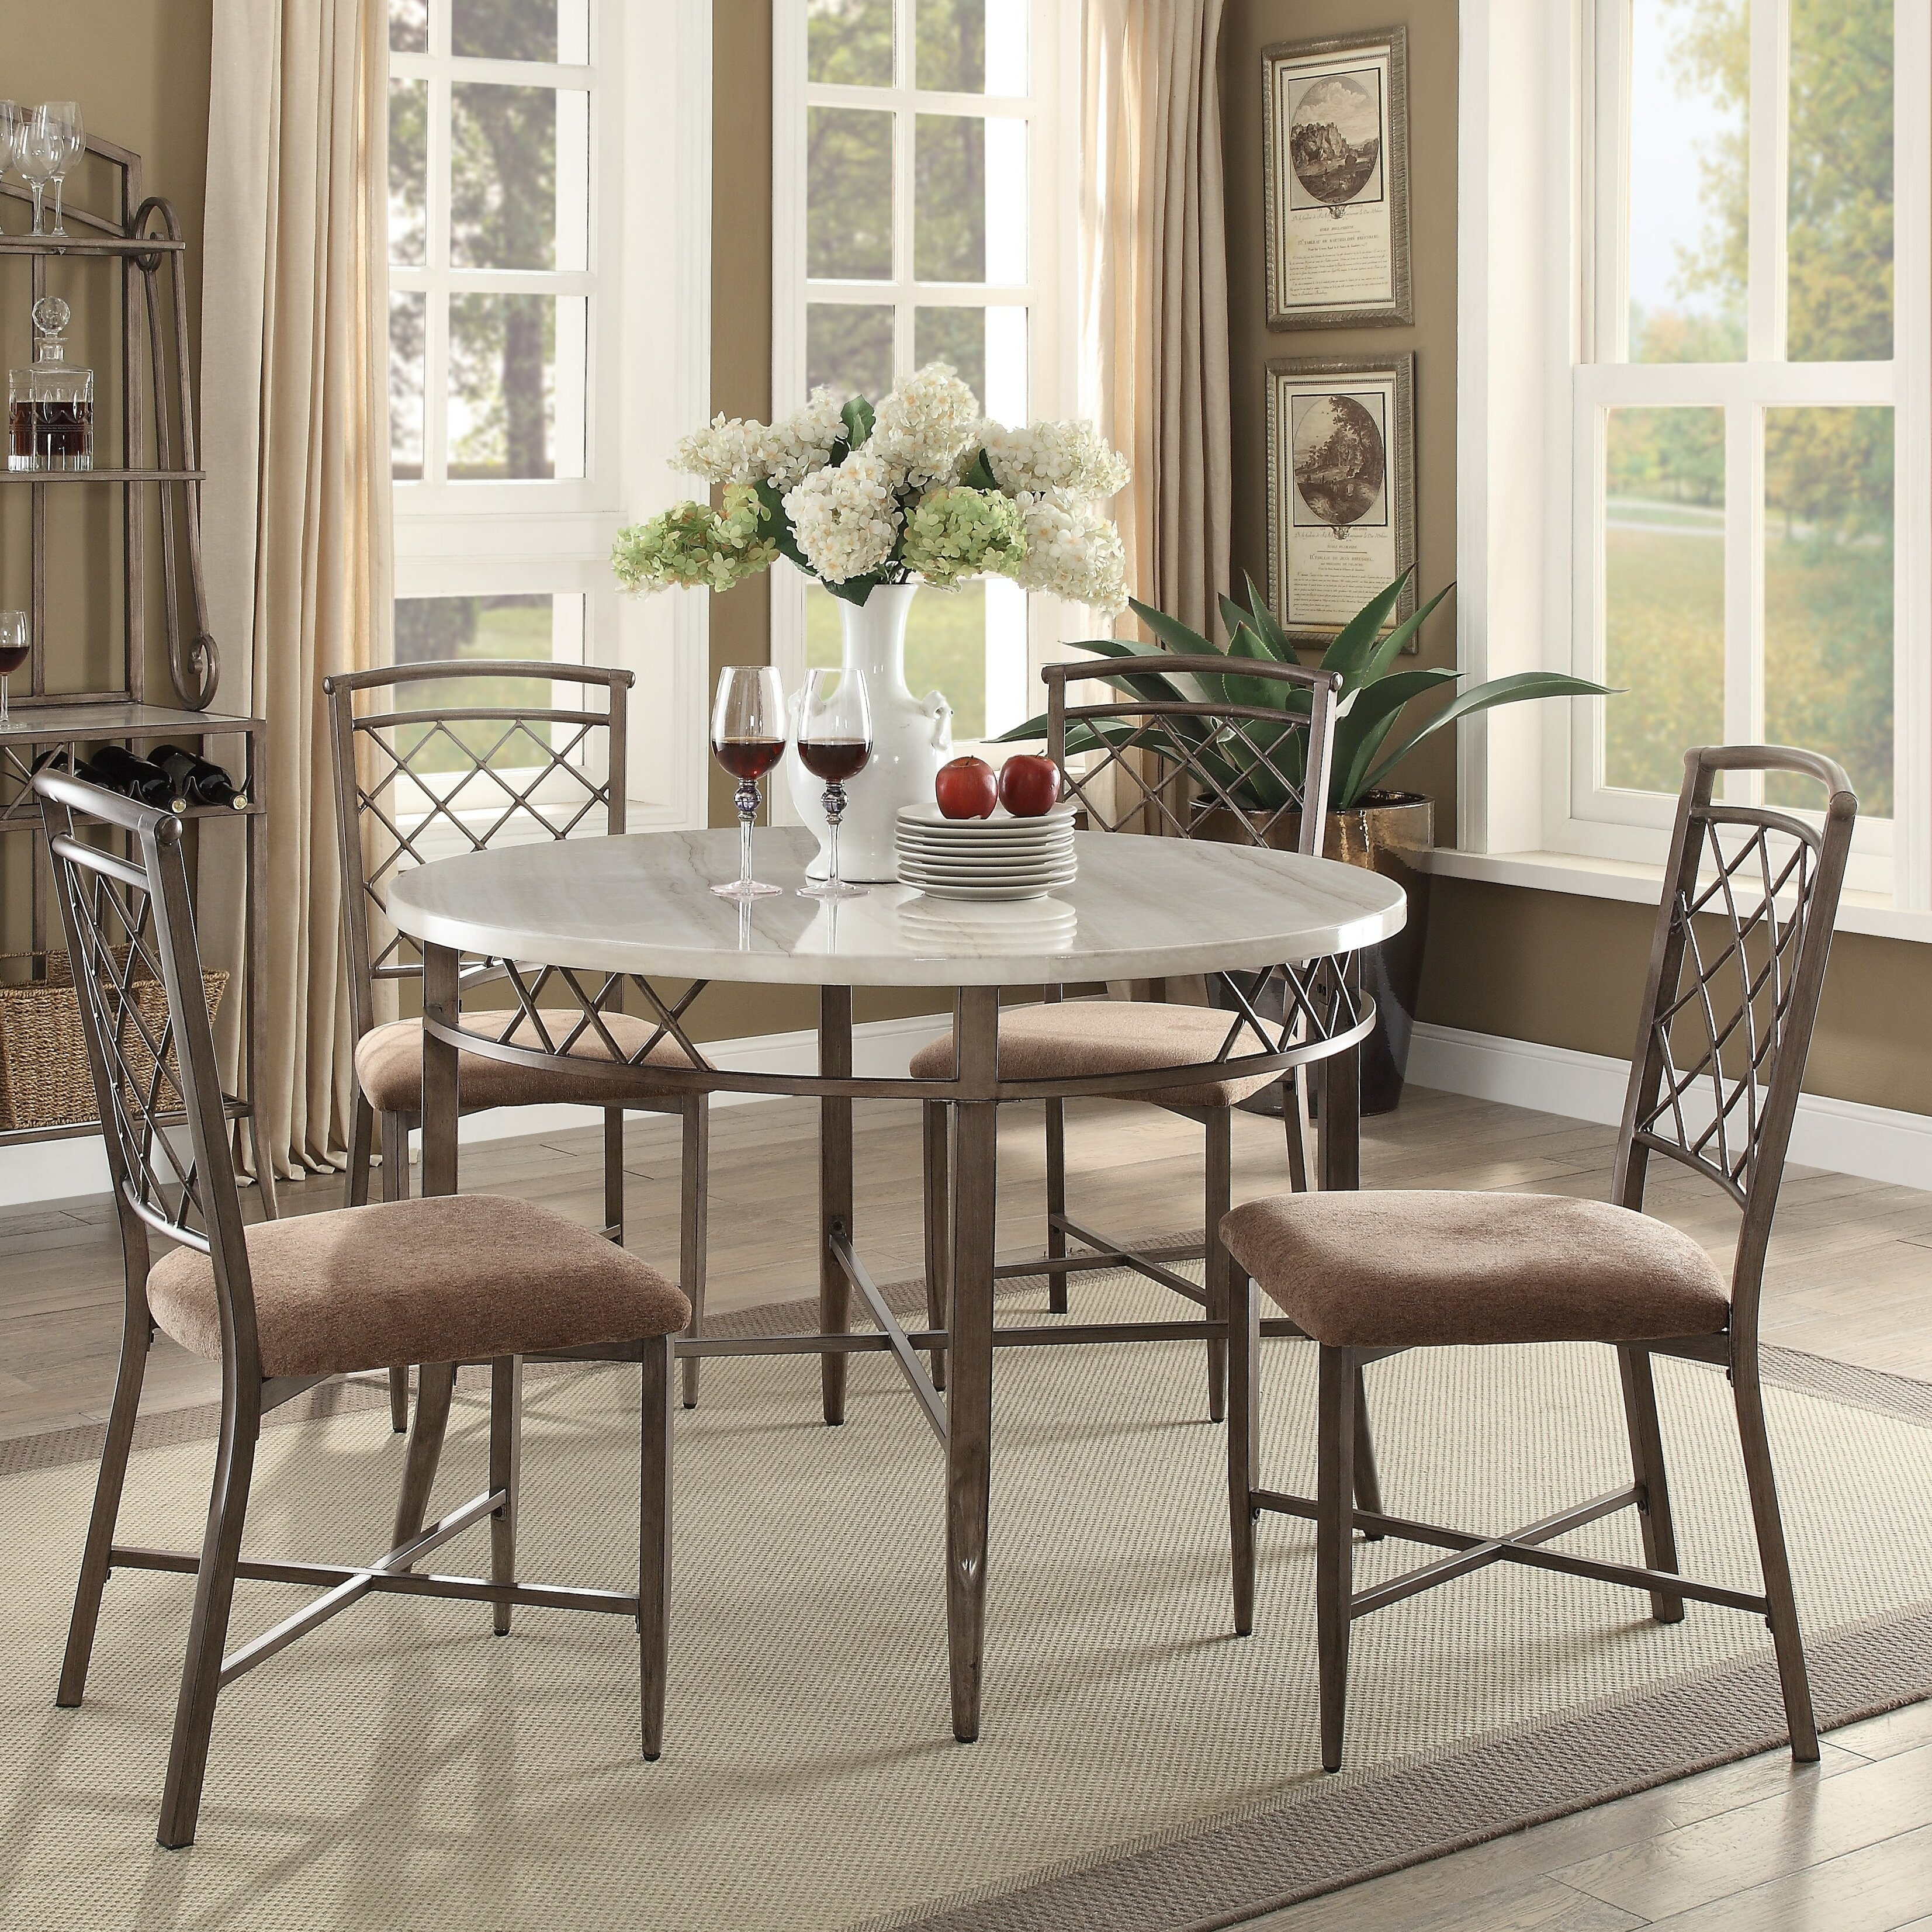 Charlton Home® Bedfordshire 4 - Person Dining Set & Reviews | Wayfair